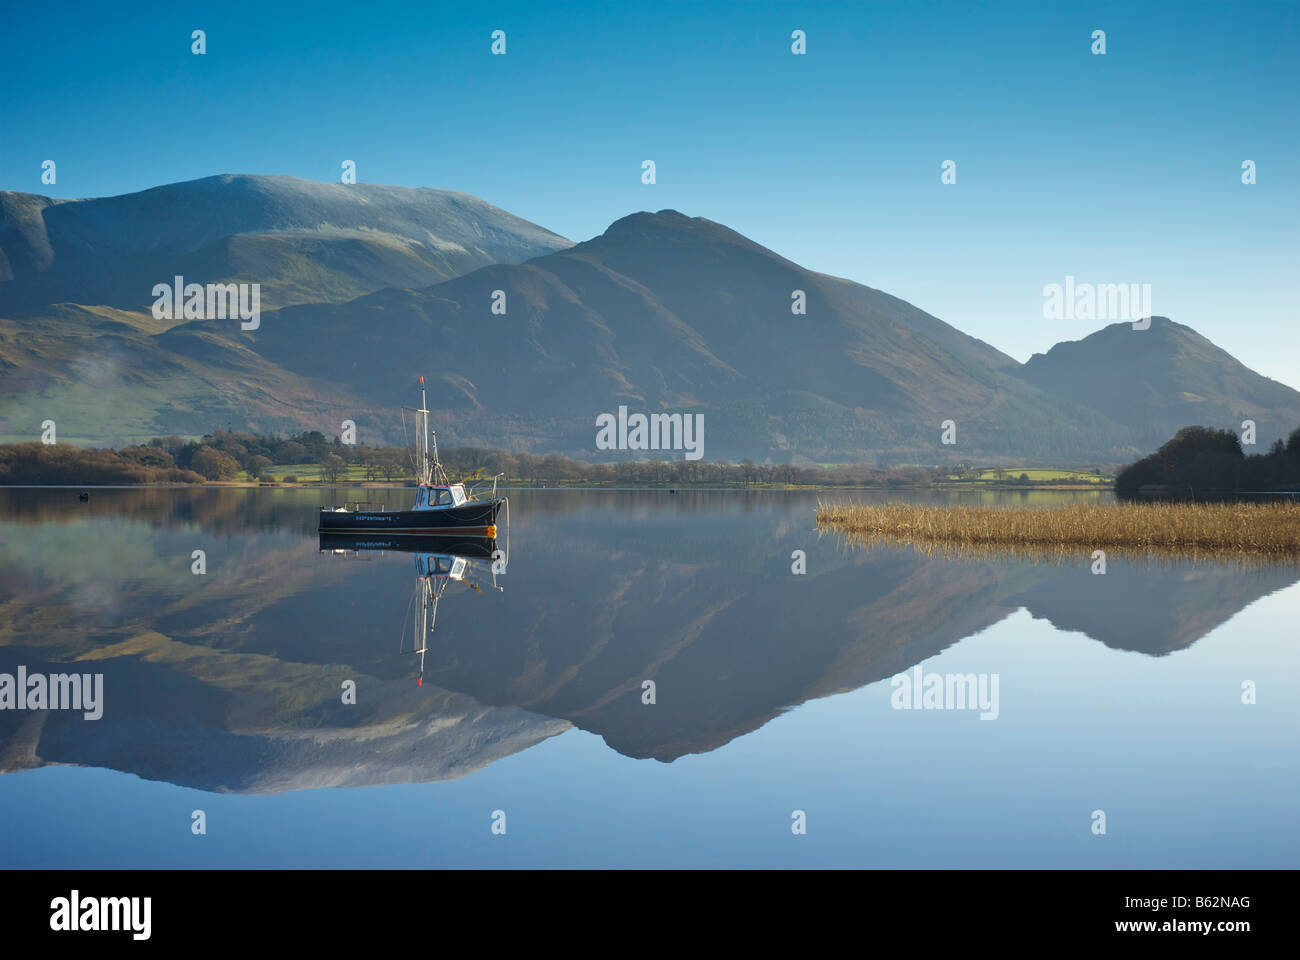 boat-at-mooring-buoy-near-sailing-club-bassenthwaite-lake-with-skiddaw-B62NAG.jpg